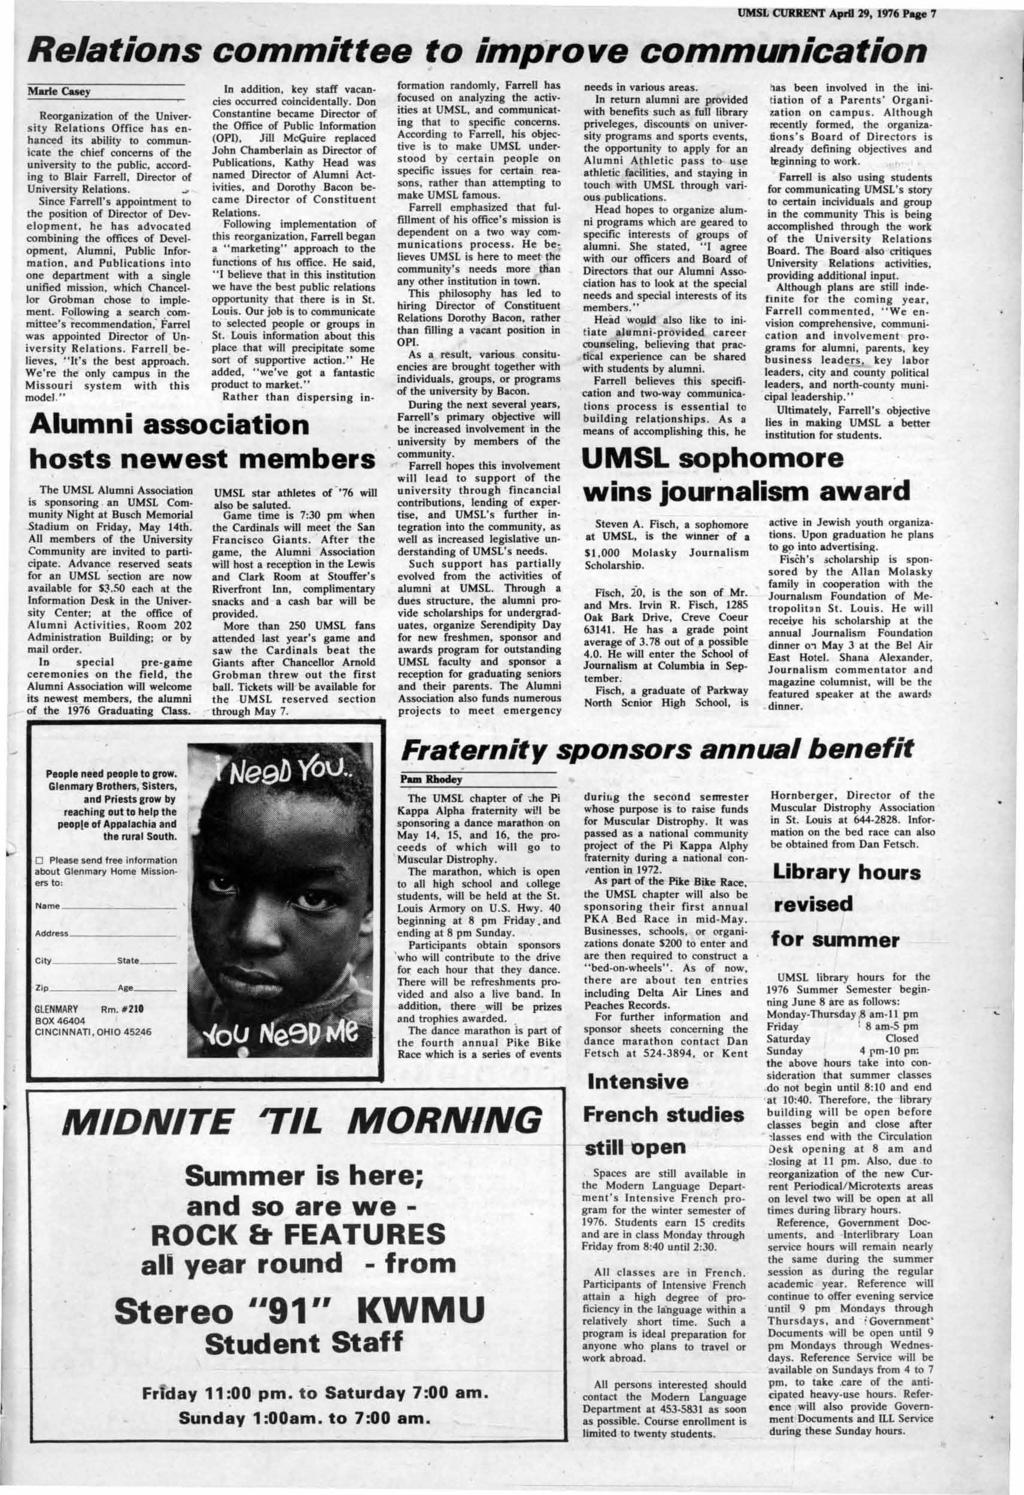 UMSL CUIUlENT April 29, 1976 Paae 7 Relations committee to improve communication Marie Casey Reorganization of the University Relations Office has enhanced its ability to communicate the chief